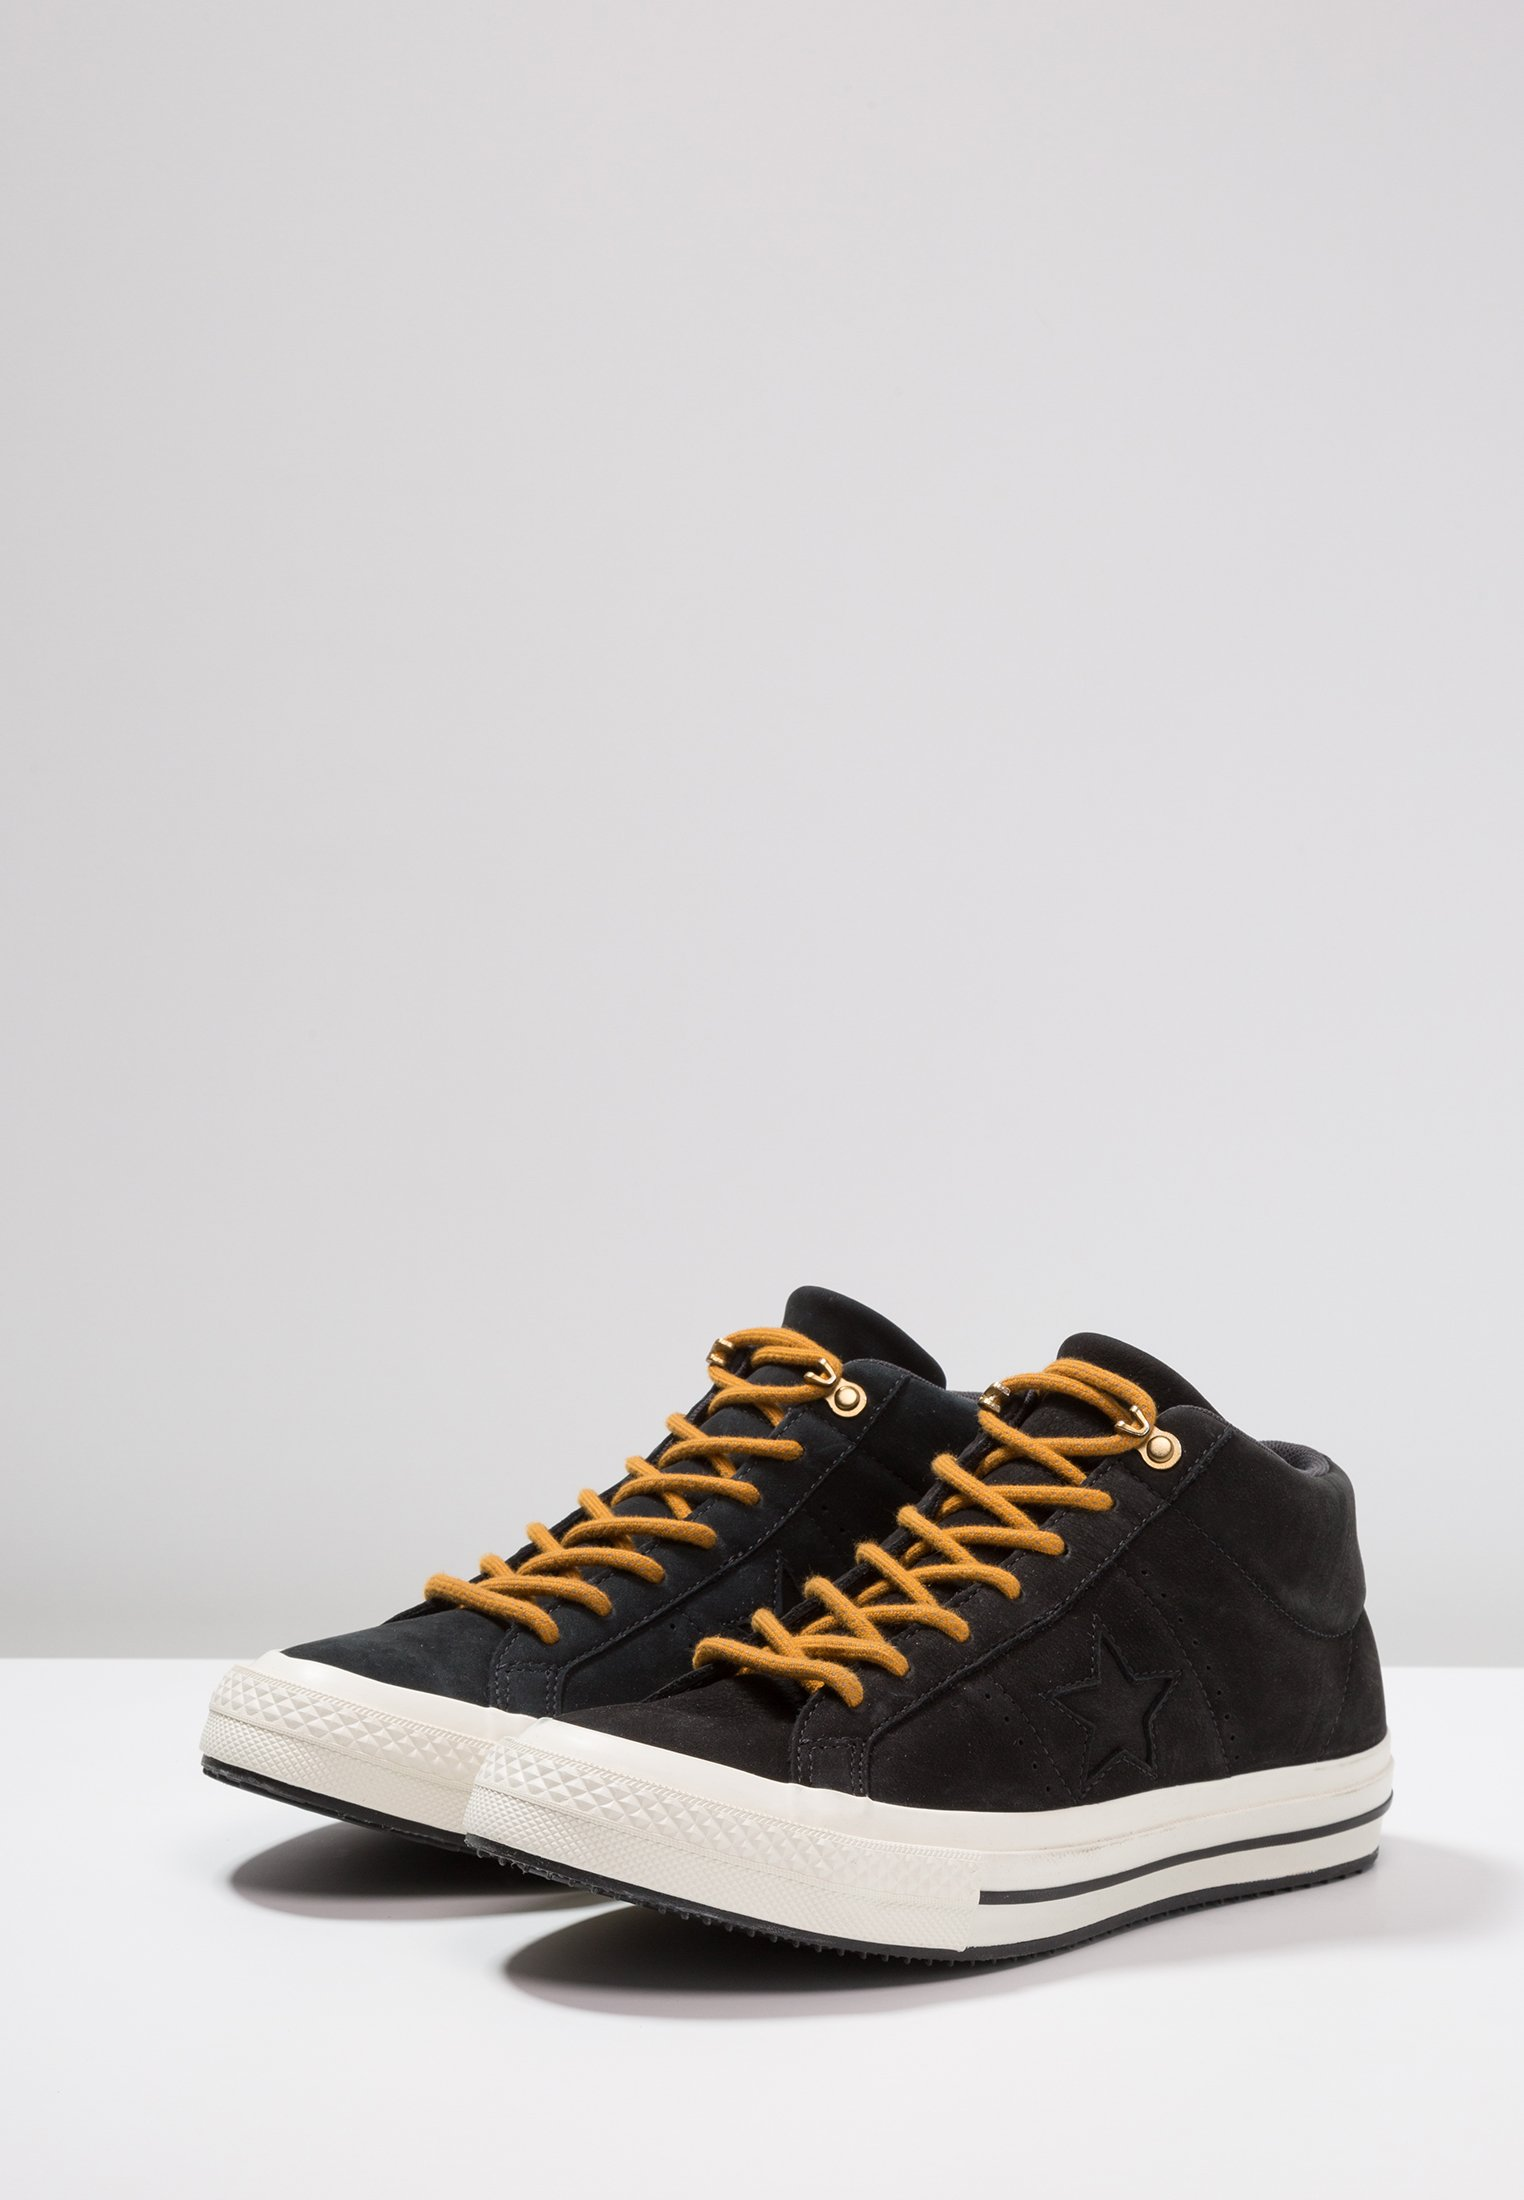 Montantes Star almost Converse egret Black Counter Mid ClimateBaskets One Black QCdhxsrtB